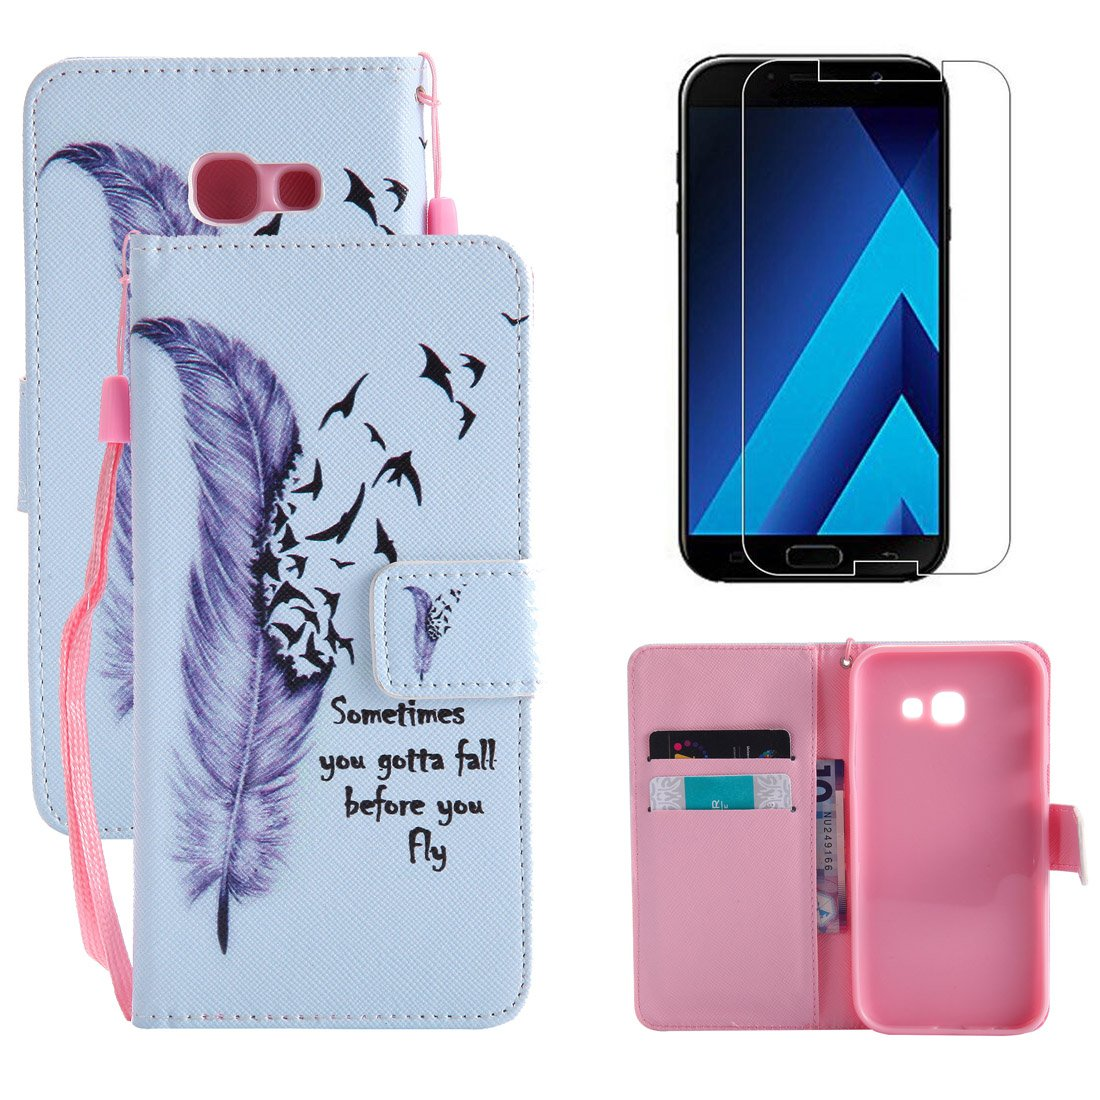 Wallet Case for Samsung Galaxy A5 2017 and Screen Protector,OYIME Elegant Colorful Painted Cute Cat Pattern Full Body Protection Flip Bookstyle Design Leather Cover with Wrist Lanyard Strap Holster Kickstand Card Slots Magnetic Closure Function